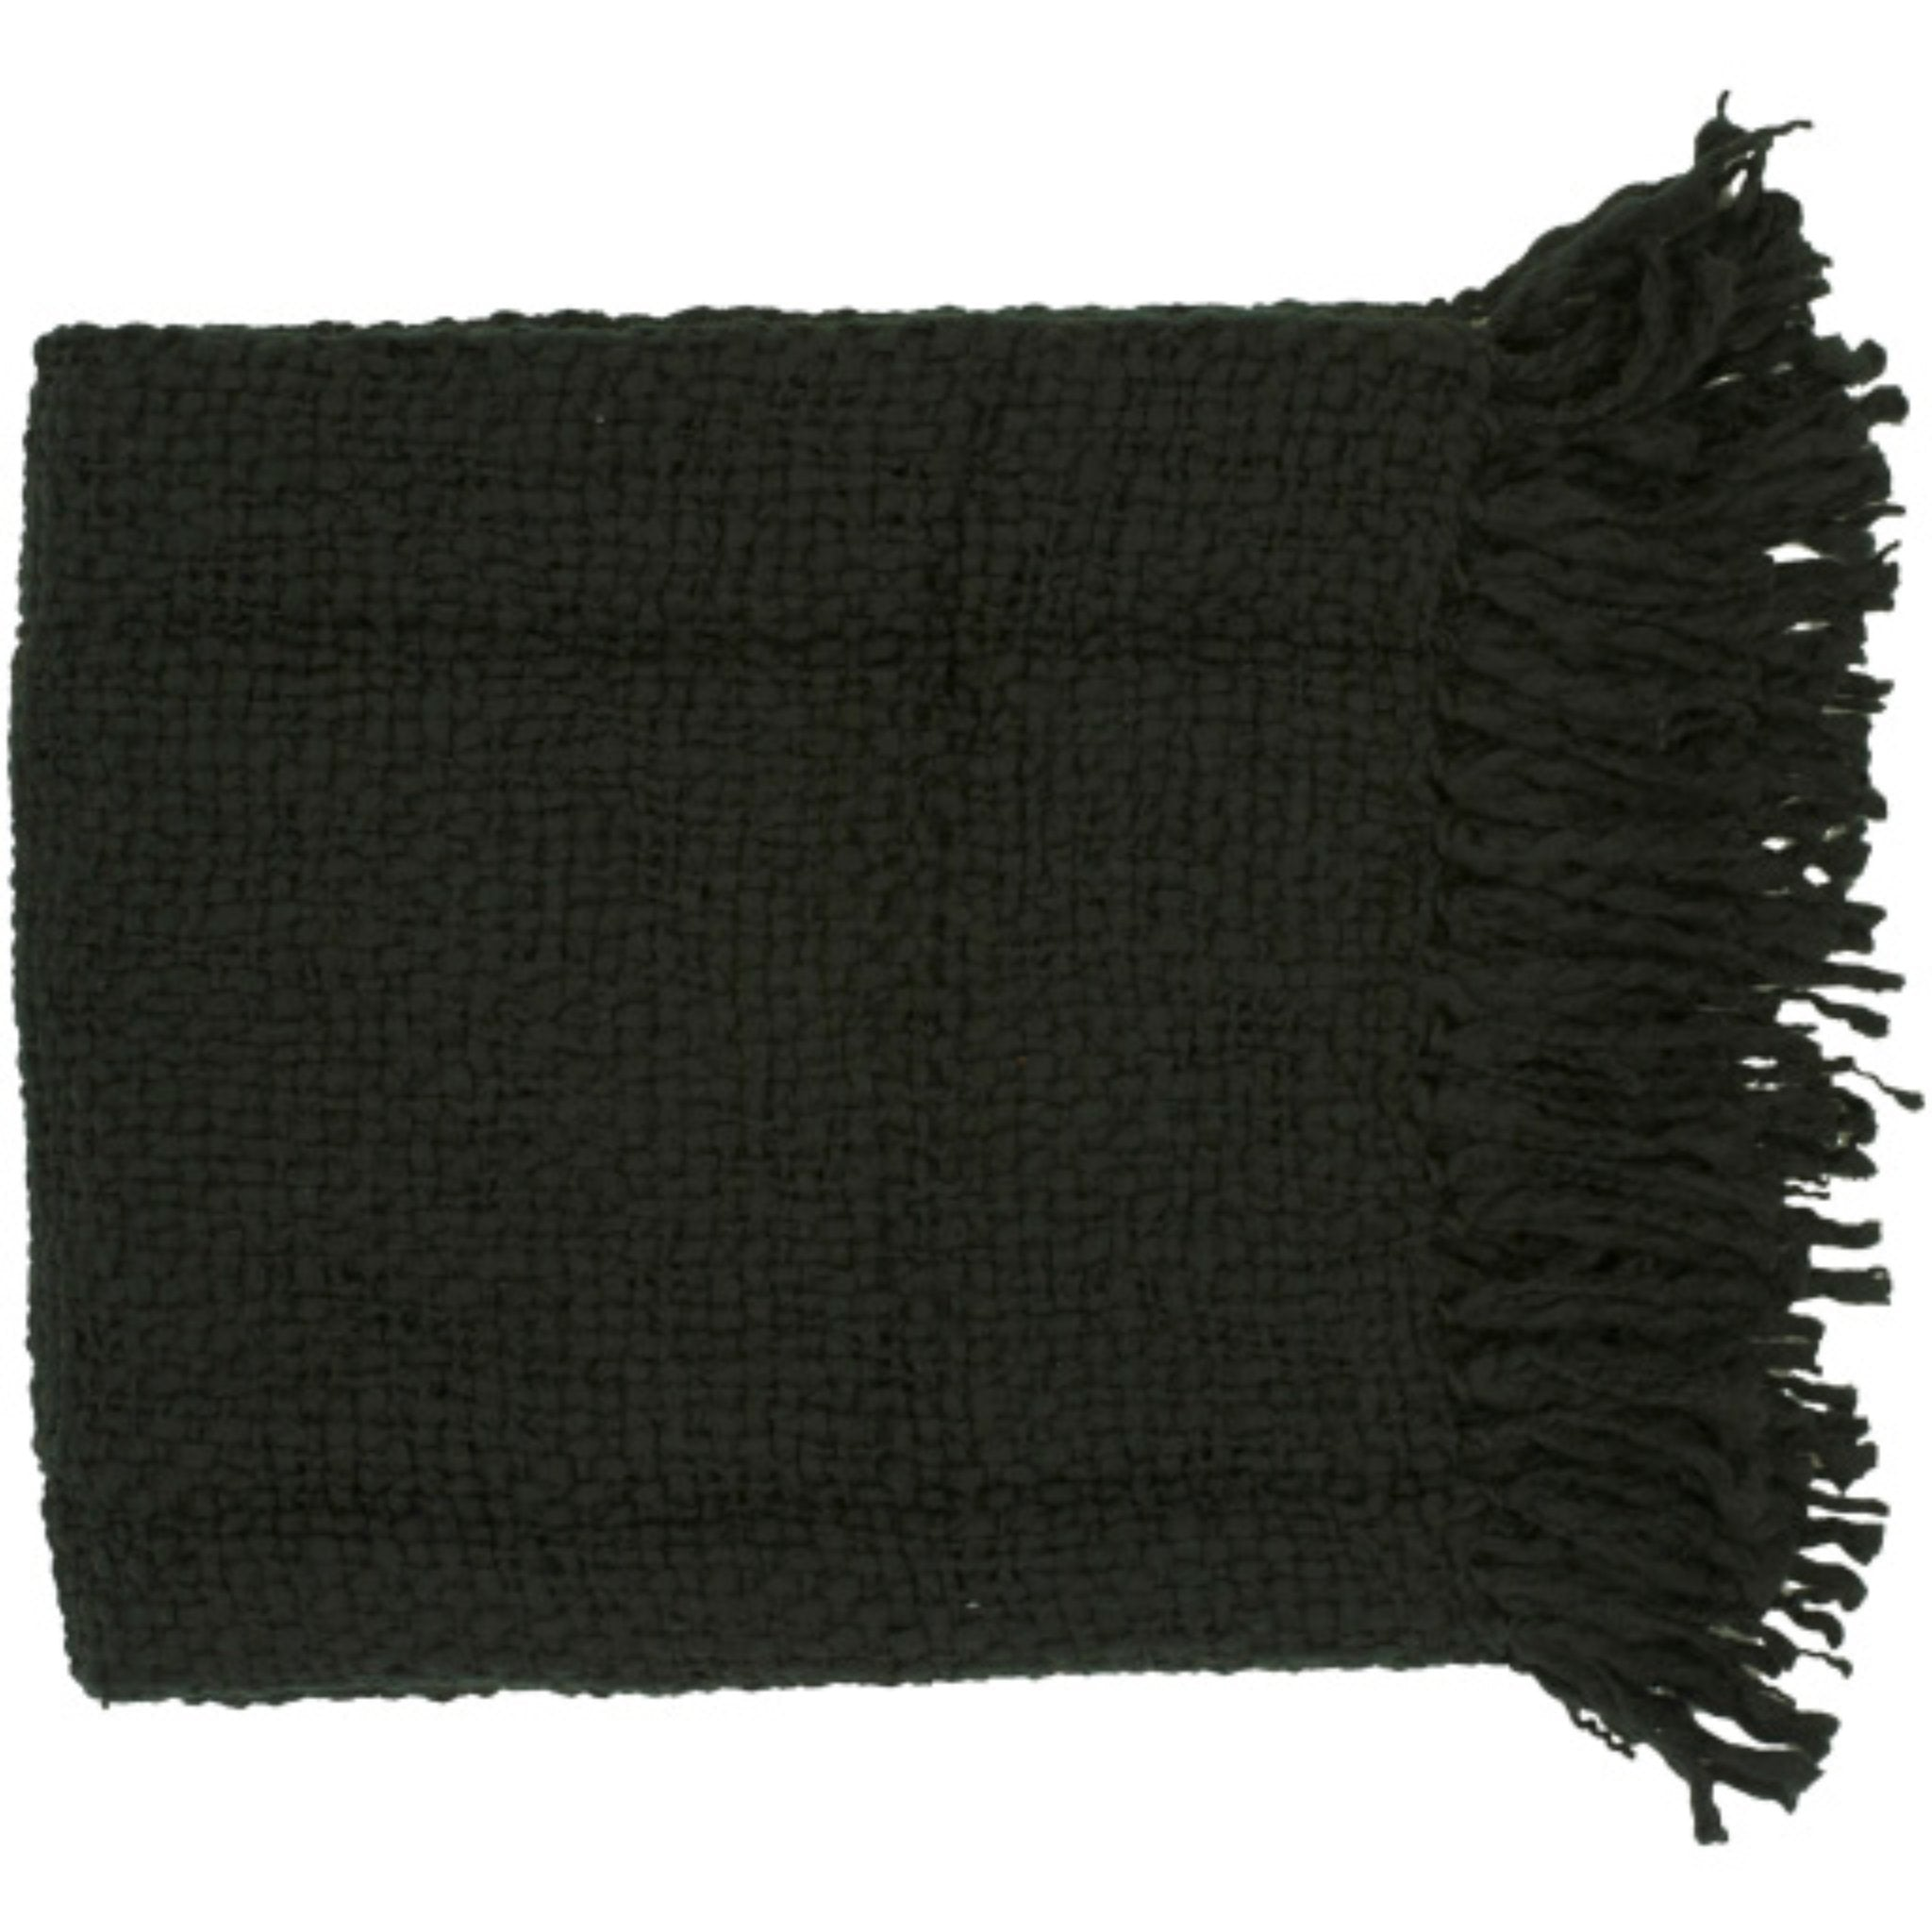 Load image into Gallery viewer, Tobias Throw Blanket - Black | Surya - Home Décor